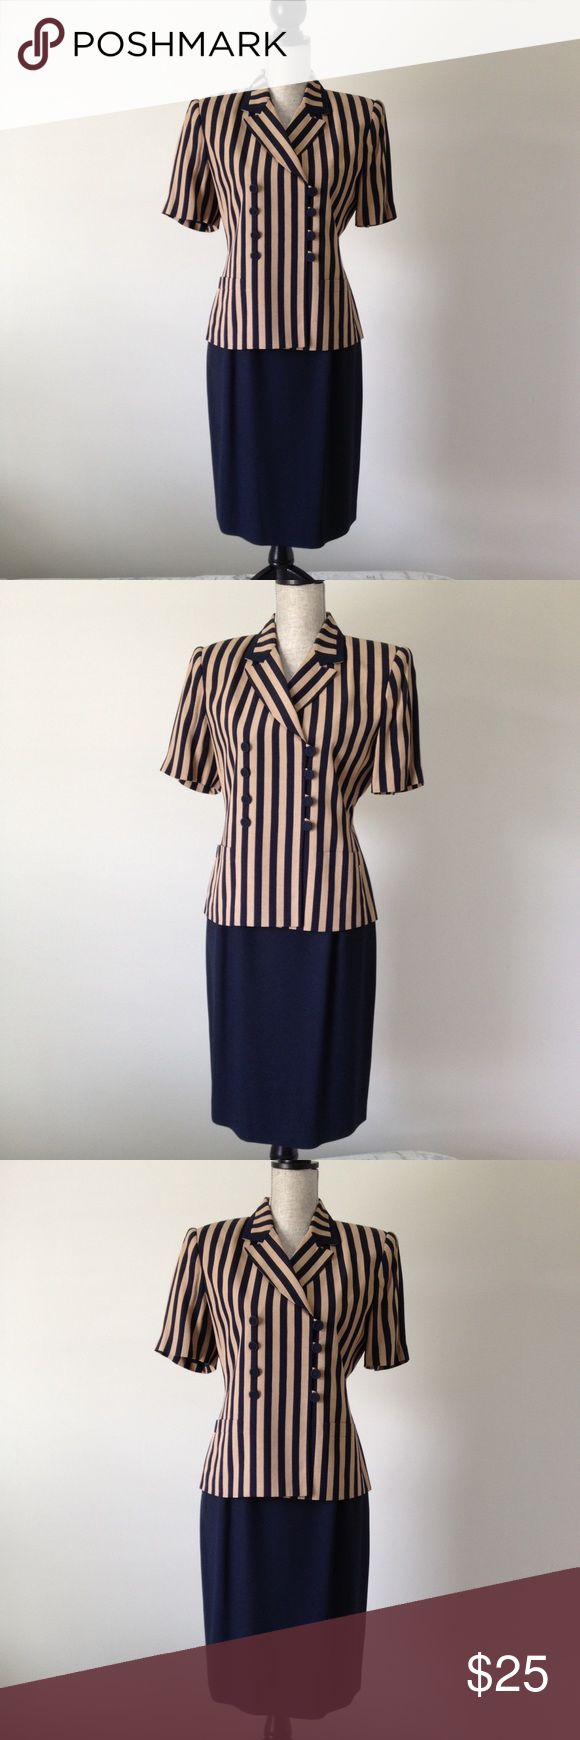 Kasper A.S.L. Petite 2-pc Suit Navy and Khaki striped Kasper Petite Suit.  Navy pencil skirt with matching short sleeve Navy and Khaki striped jacket.  Jacket has shoulder pads and Navy buttons.  Suit is lined. Kasper Skirts Skirt Sets